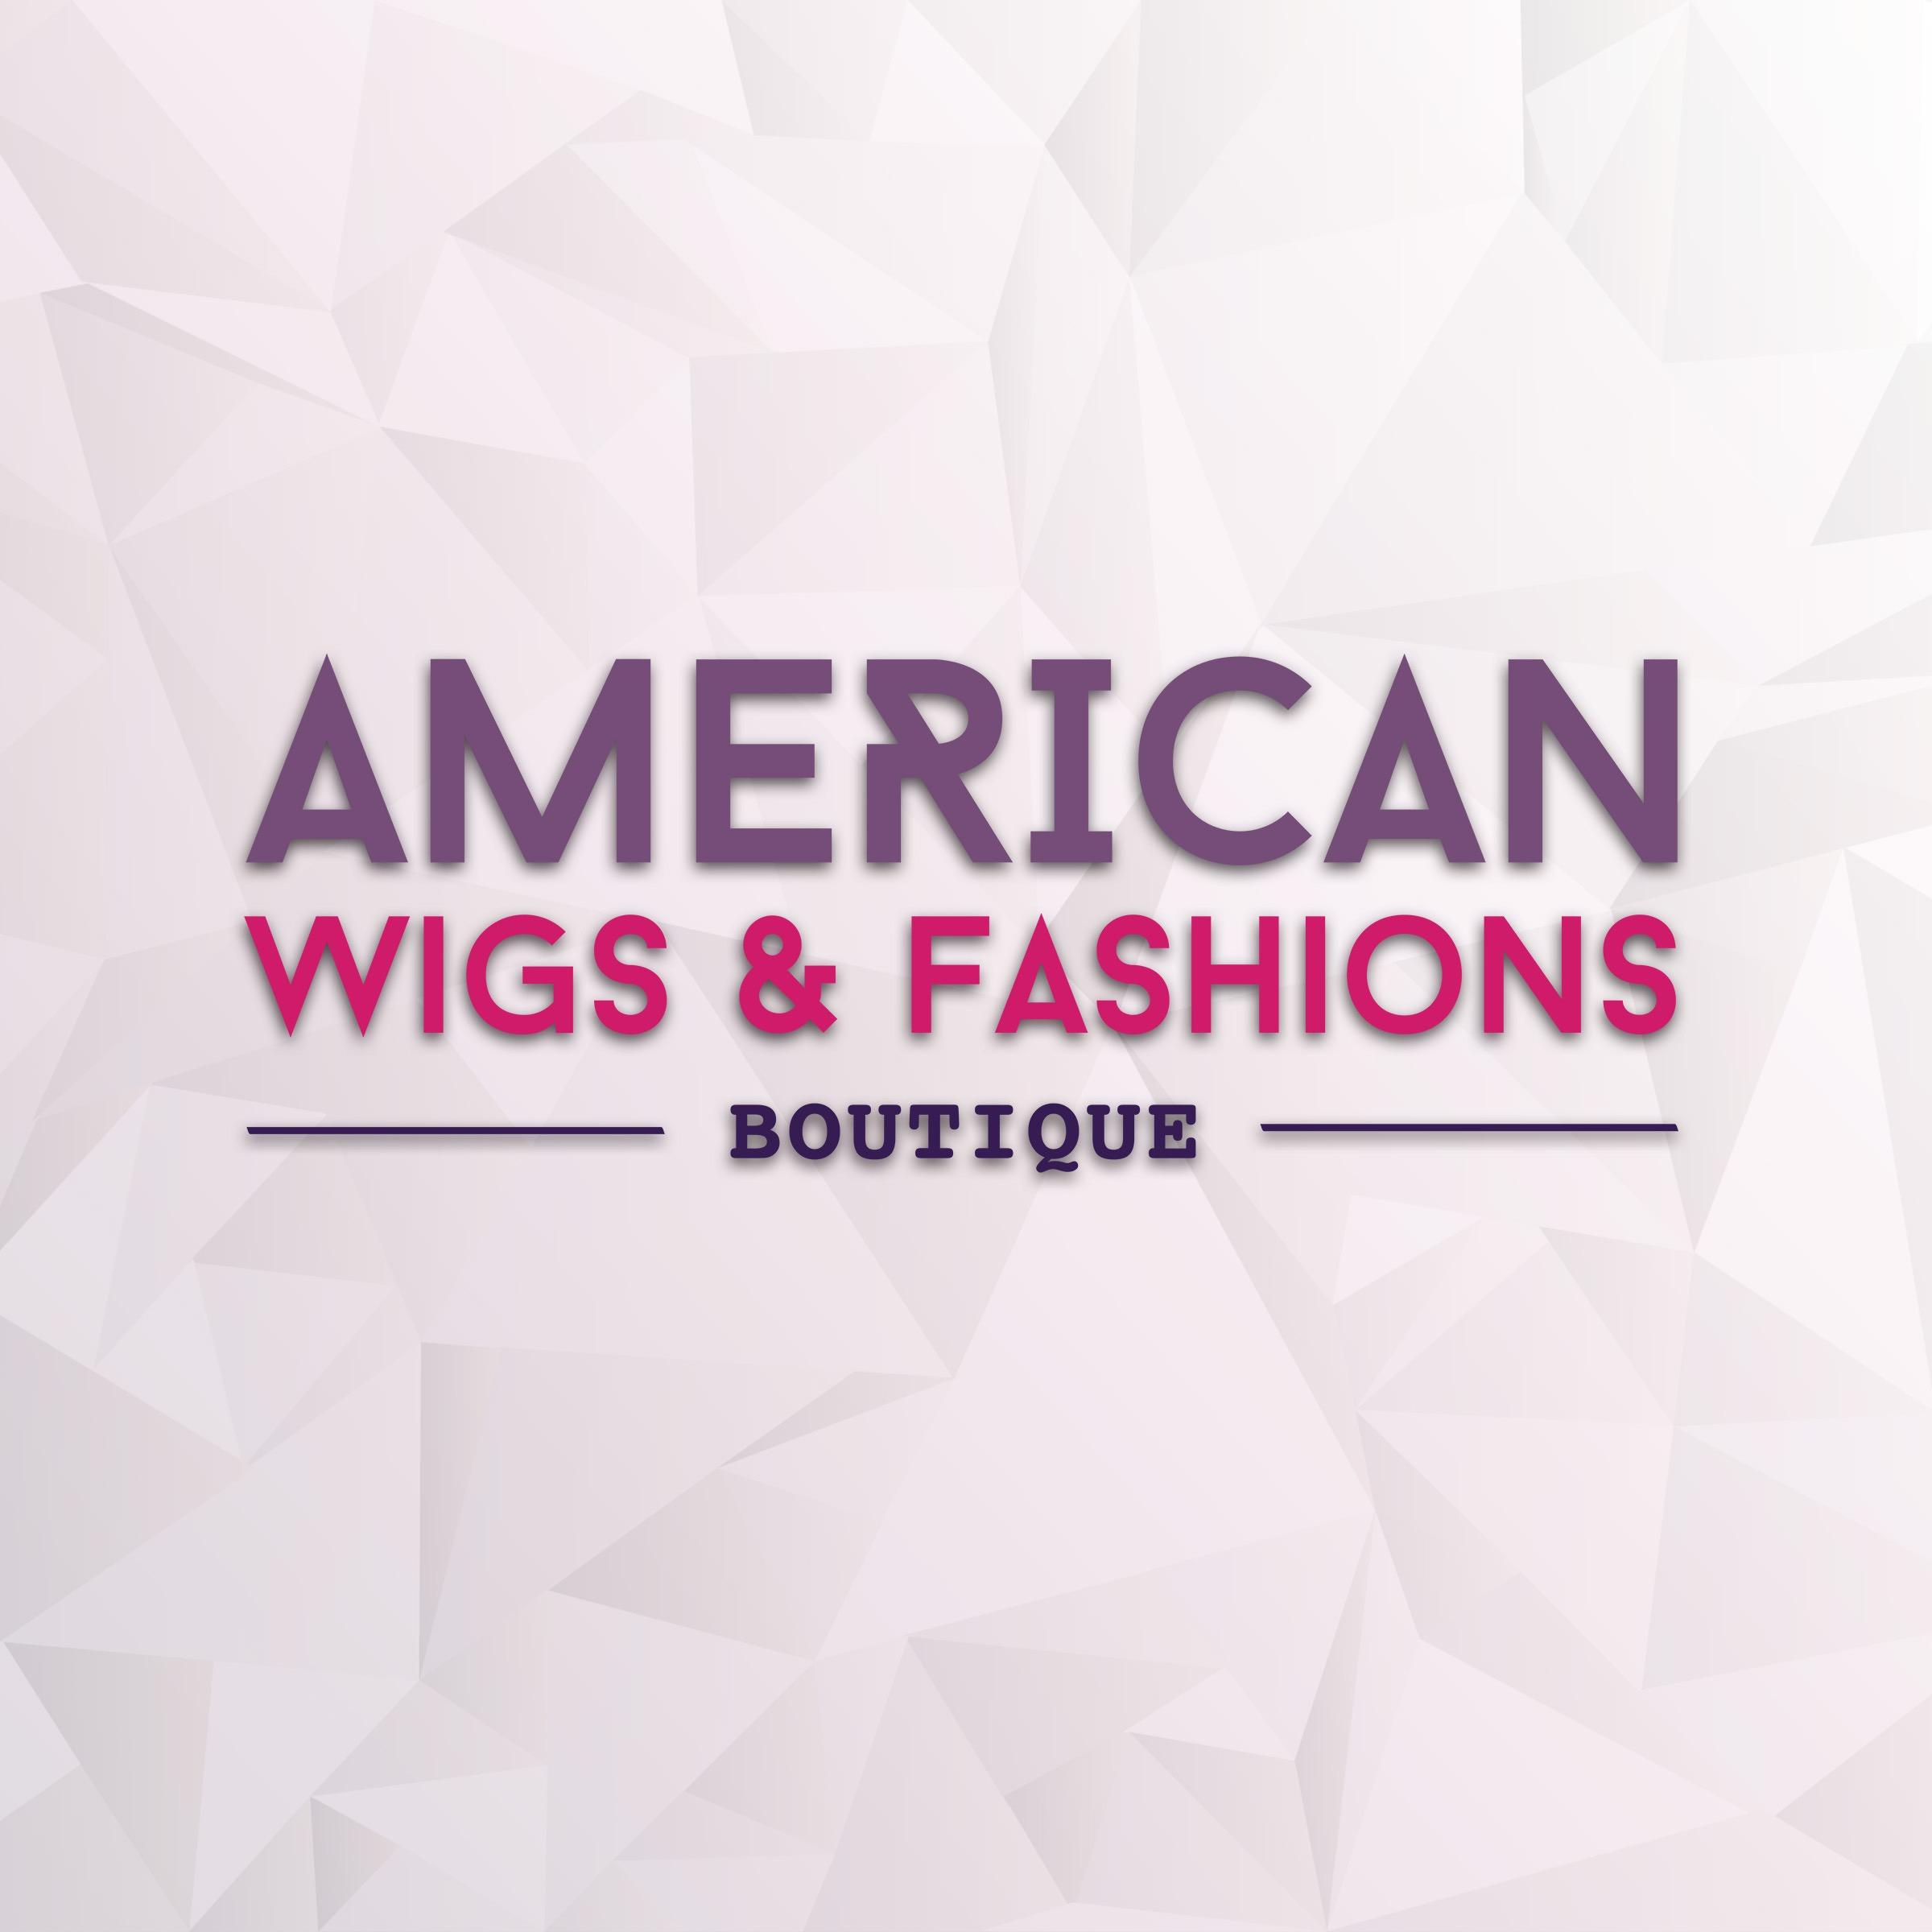 American Wigs and Fashion Boutique